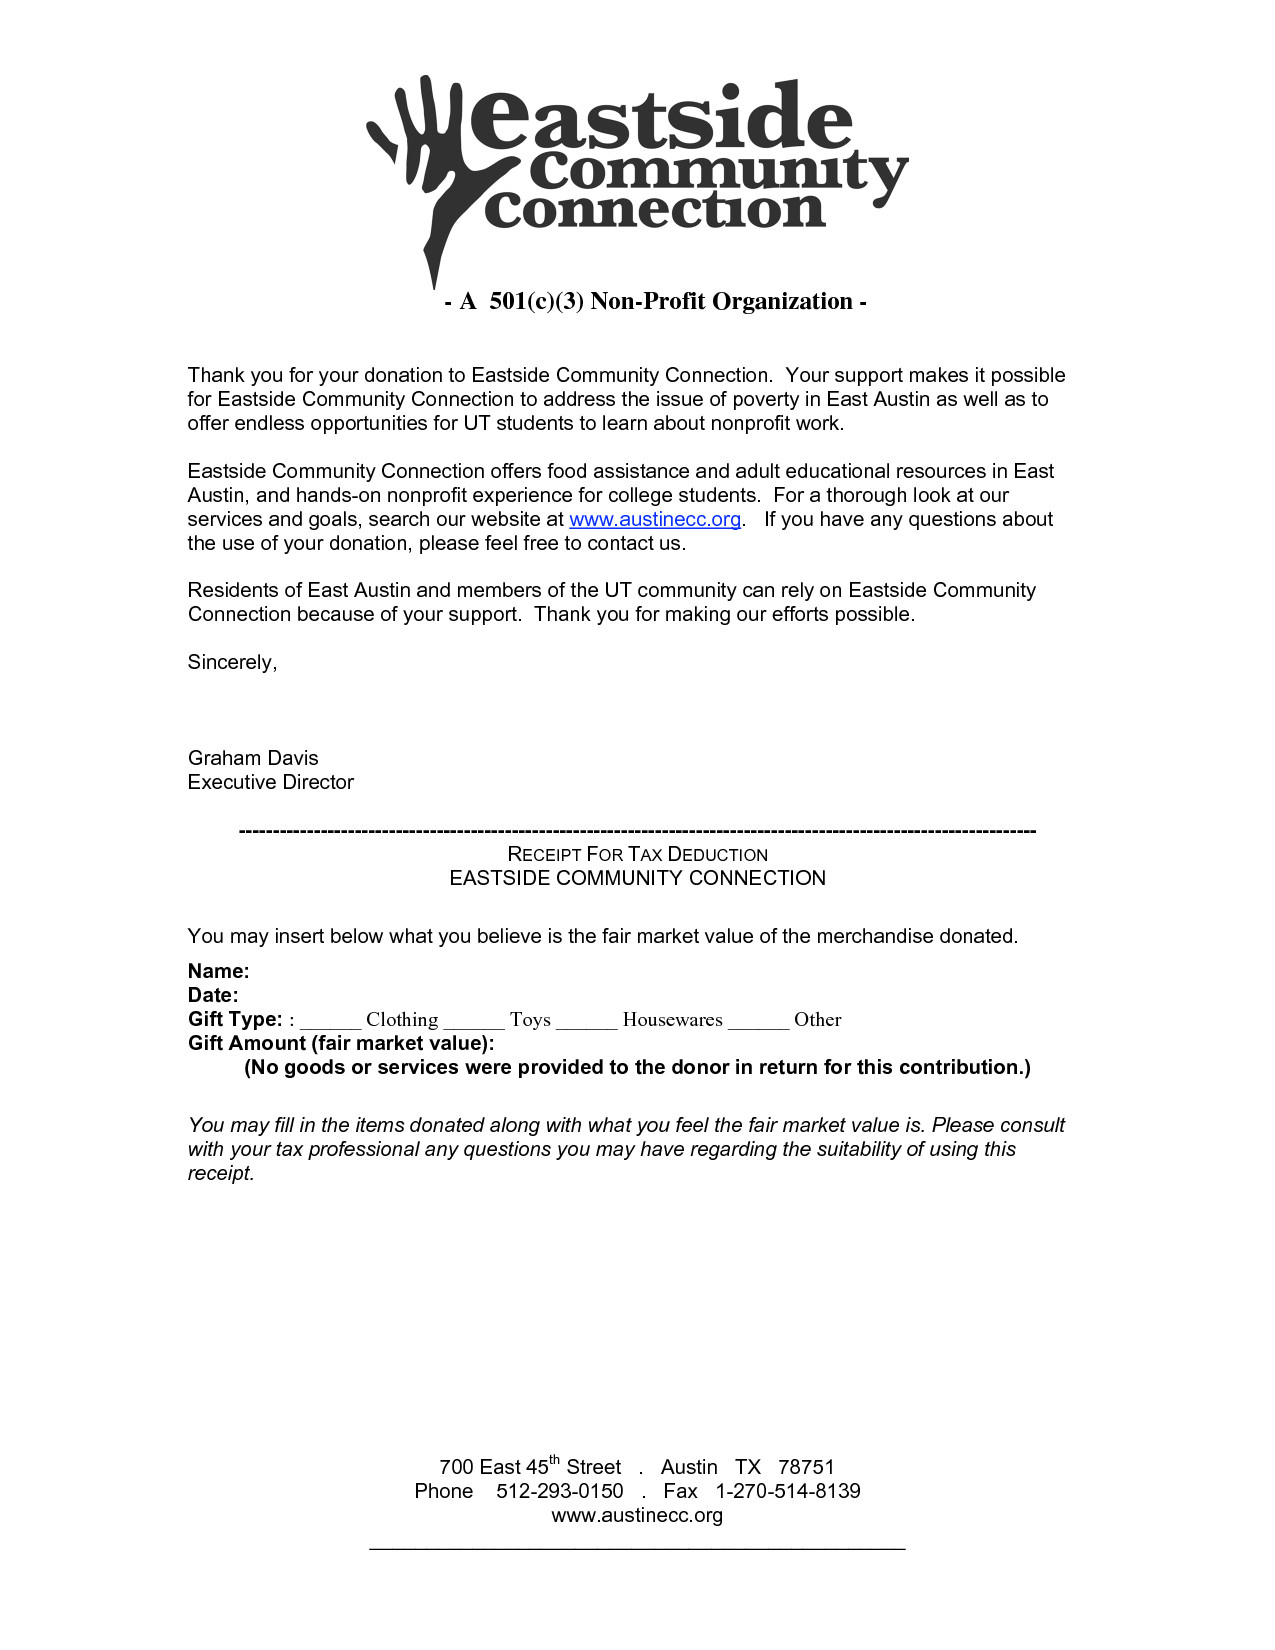 Sponsorship Letter Template for Non Profit - Sample Sponsorship Letter for Donations Beautiful Best Ideas